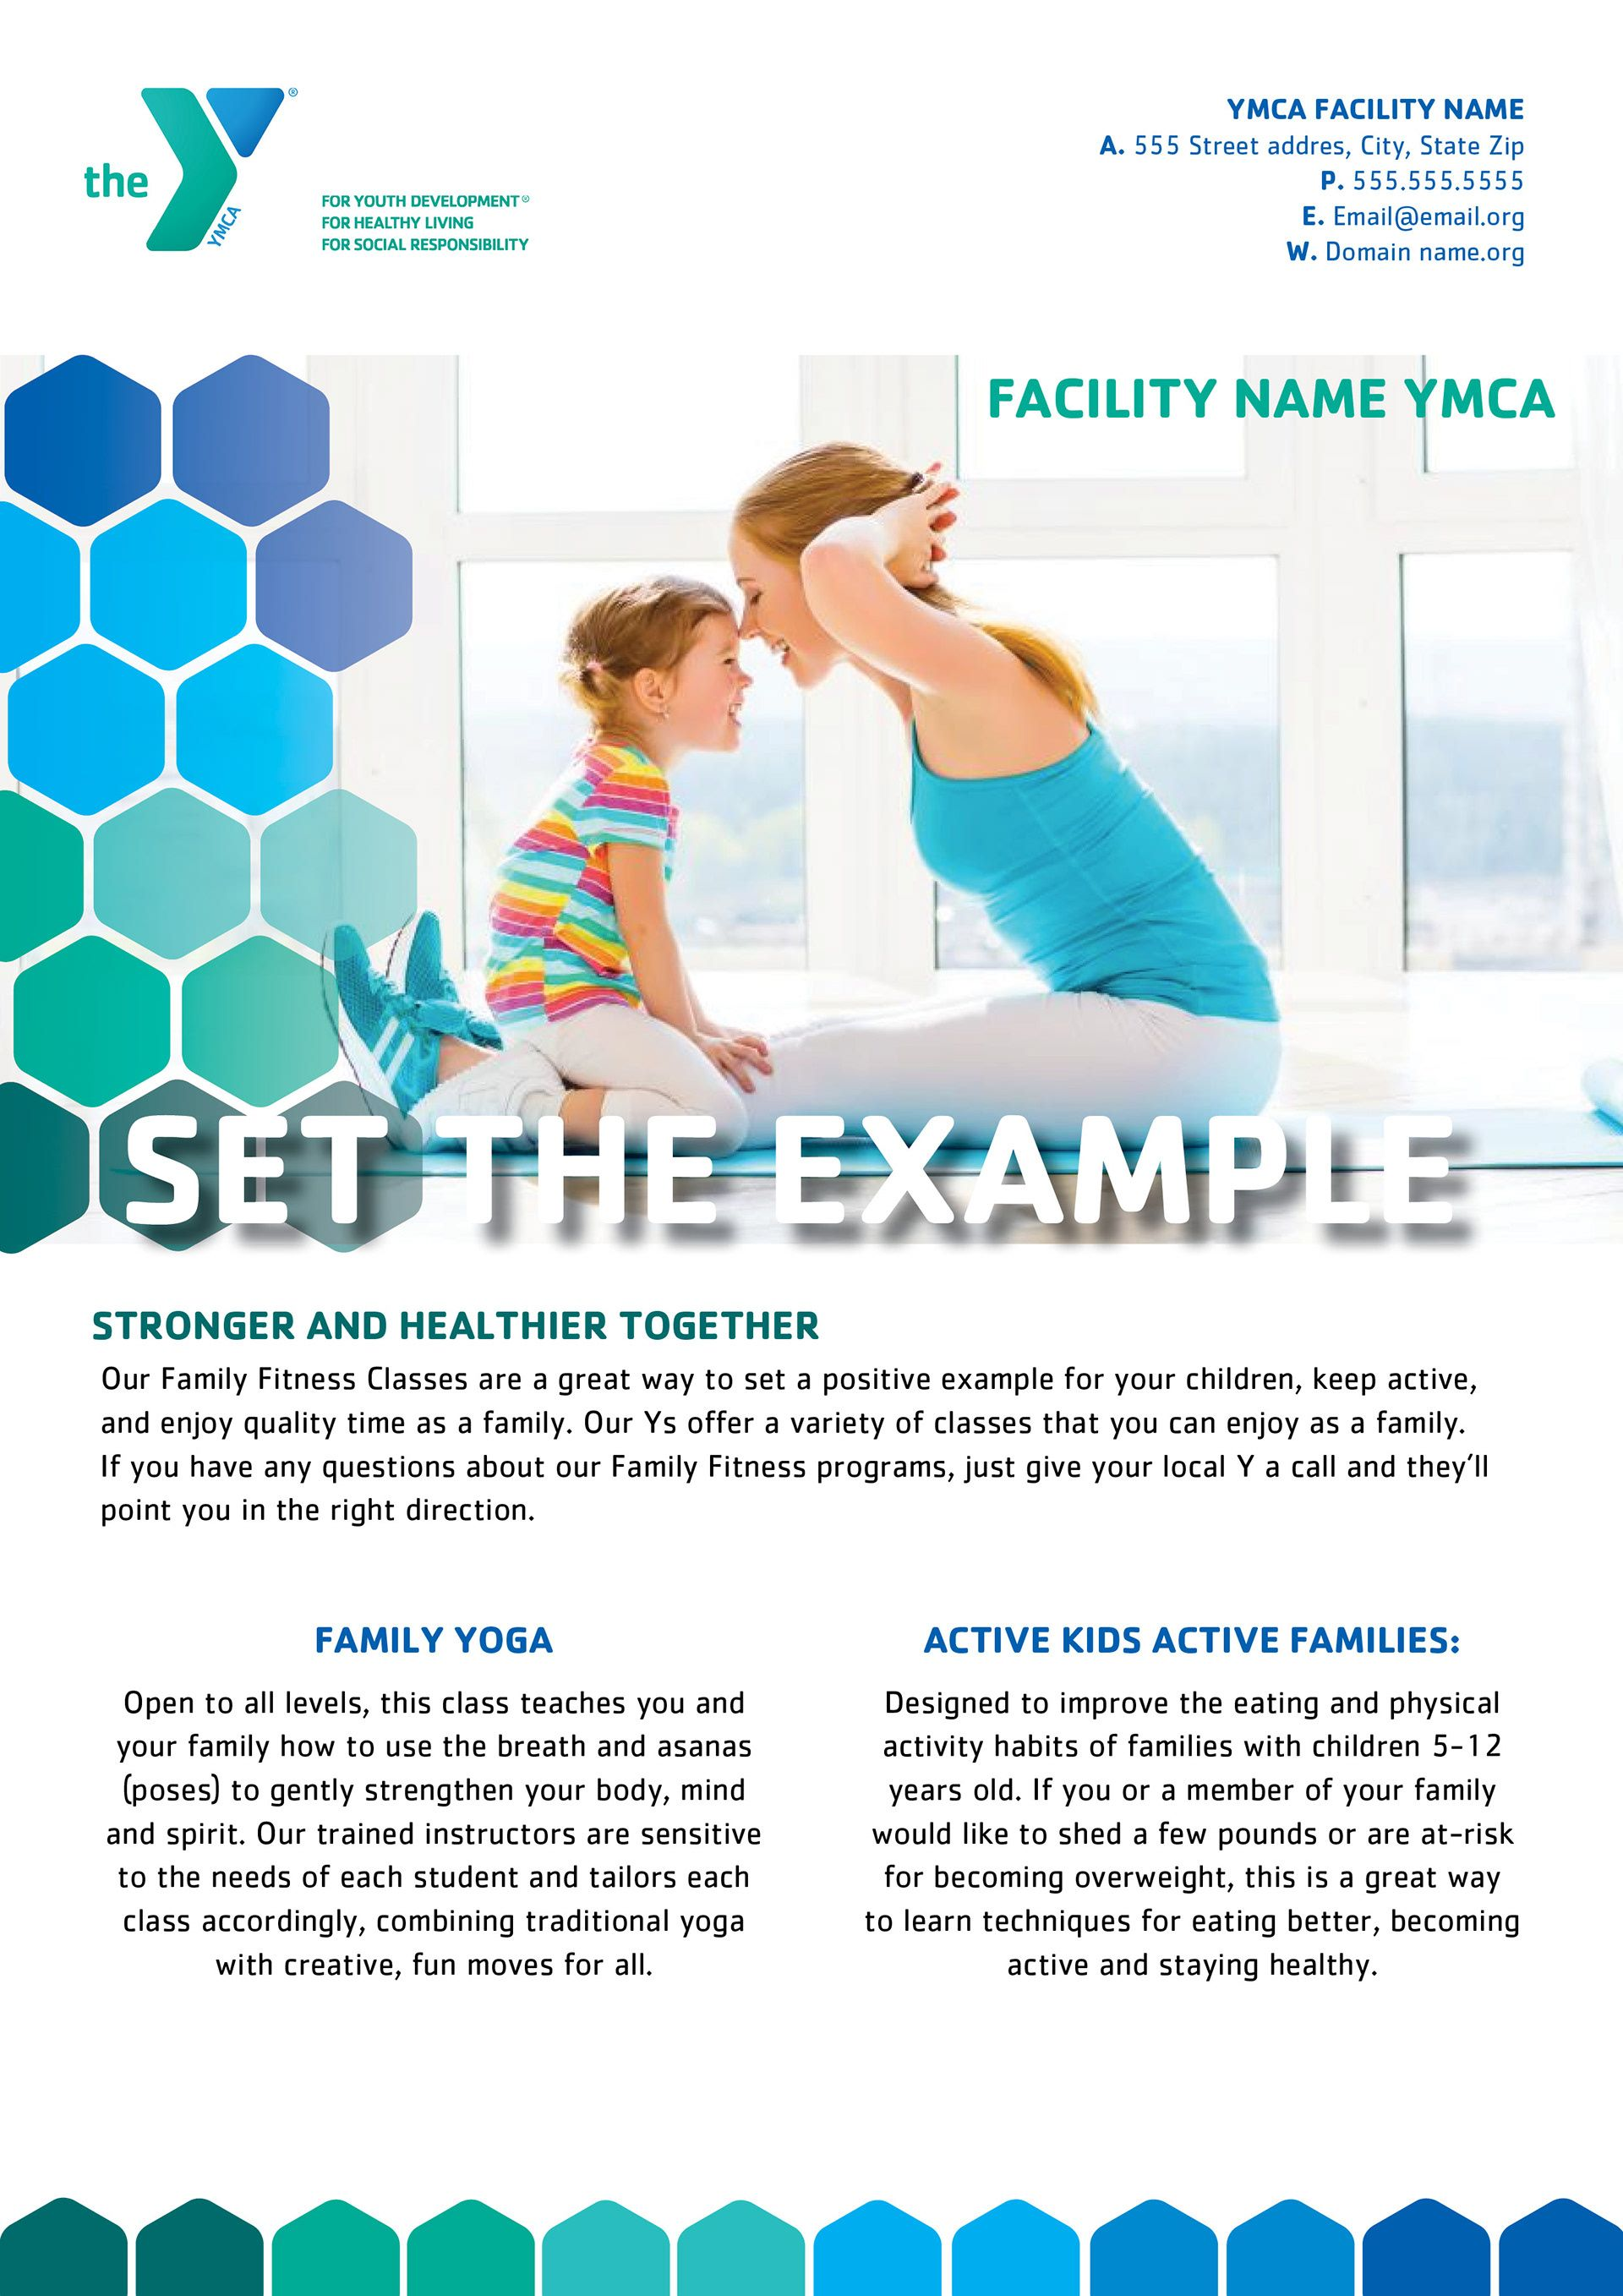 Young Men S Christian Association Empowers Youth Strengthen Family And Unites The Community Towards A Happier Healthy Lifes Ymca Youth Programs Fitness Class